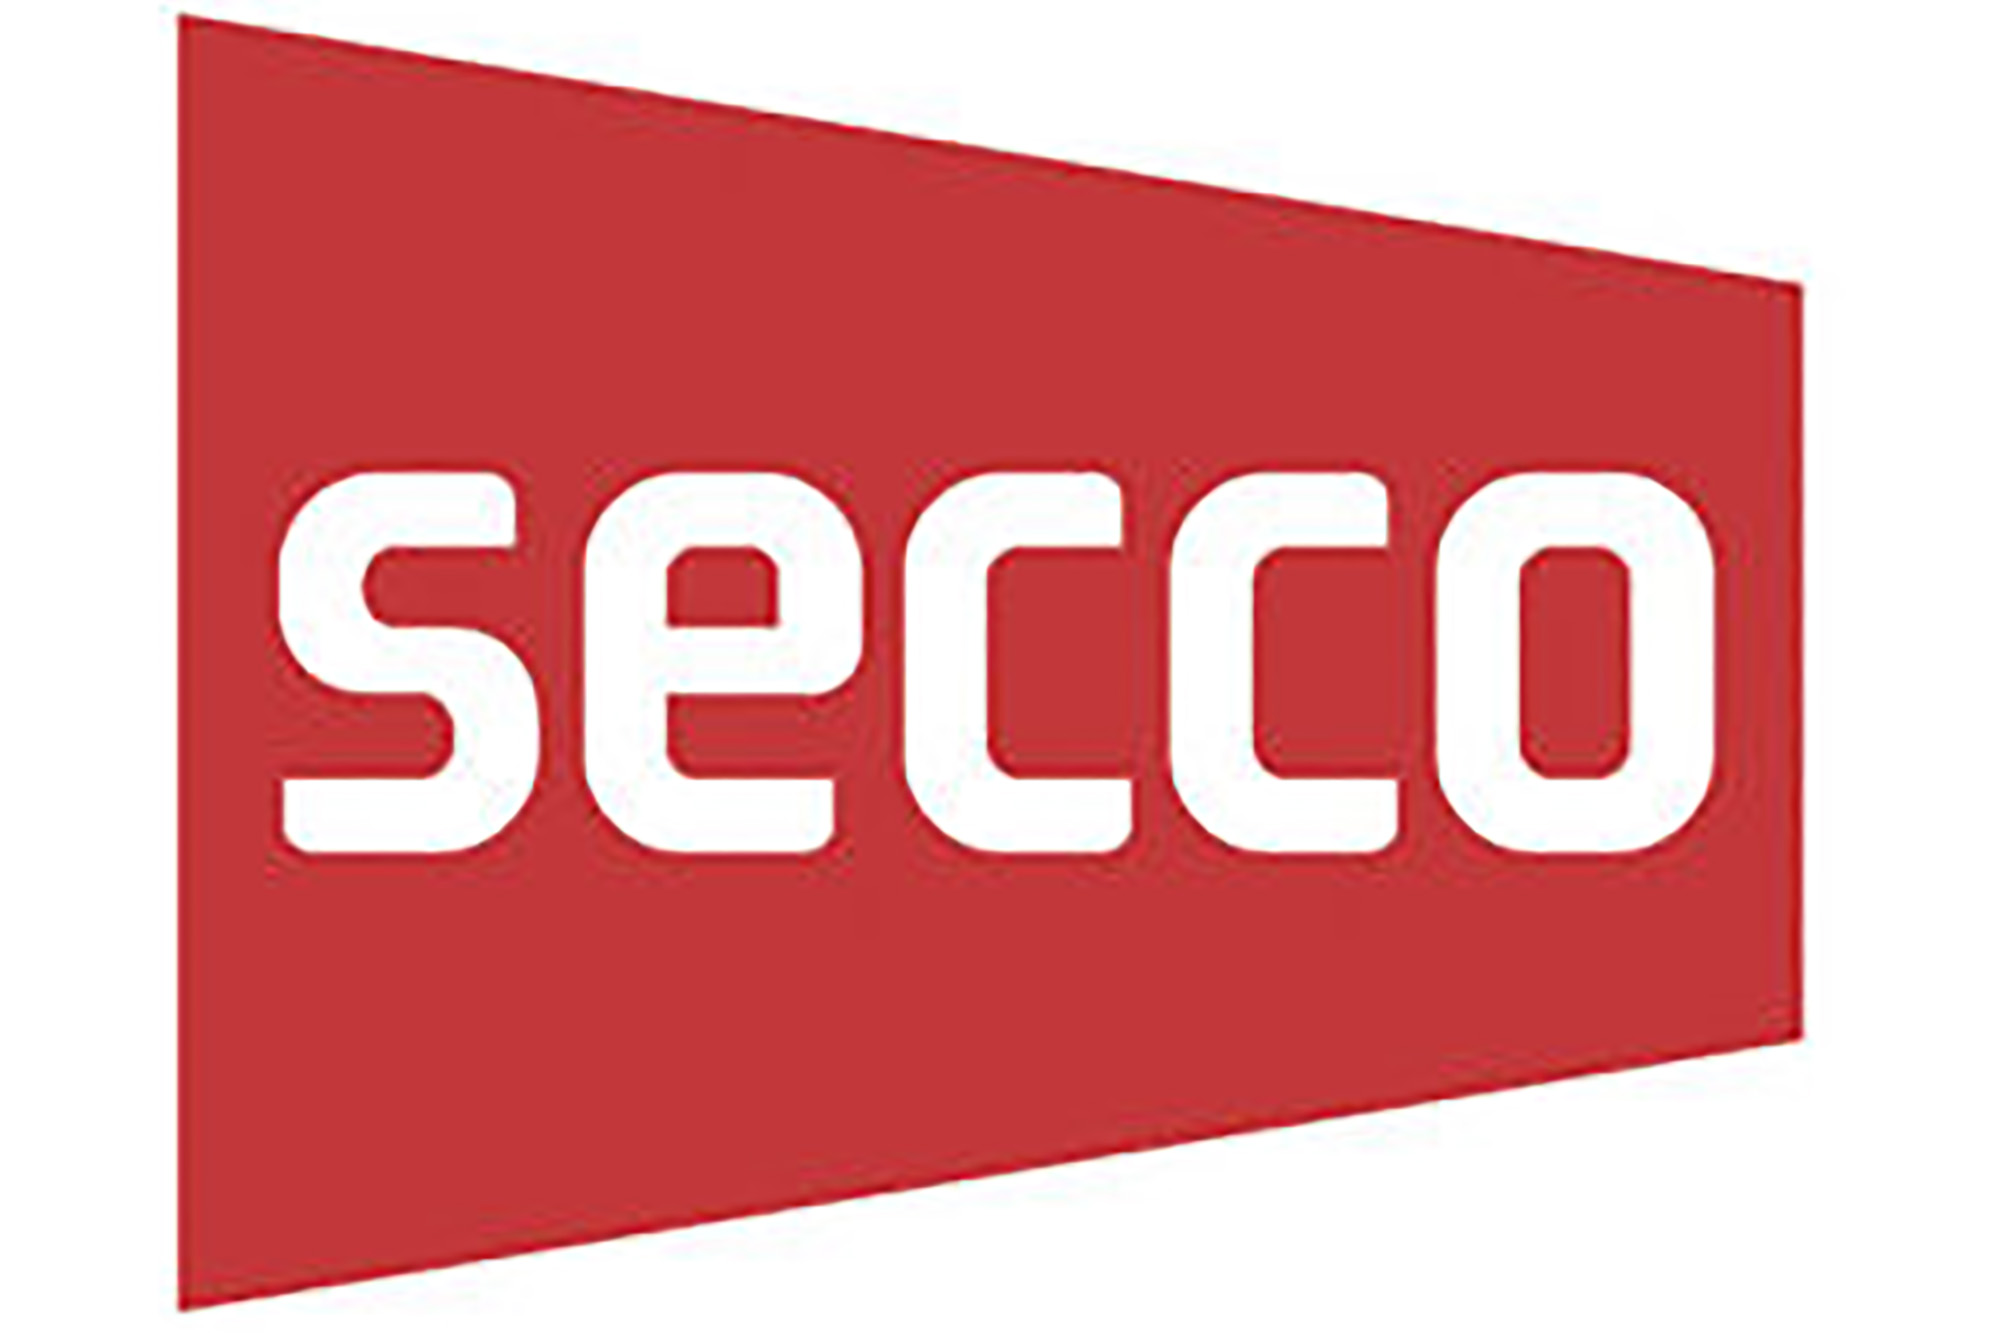 Strategic partnership with Secco